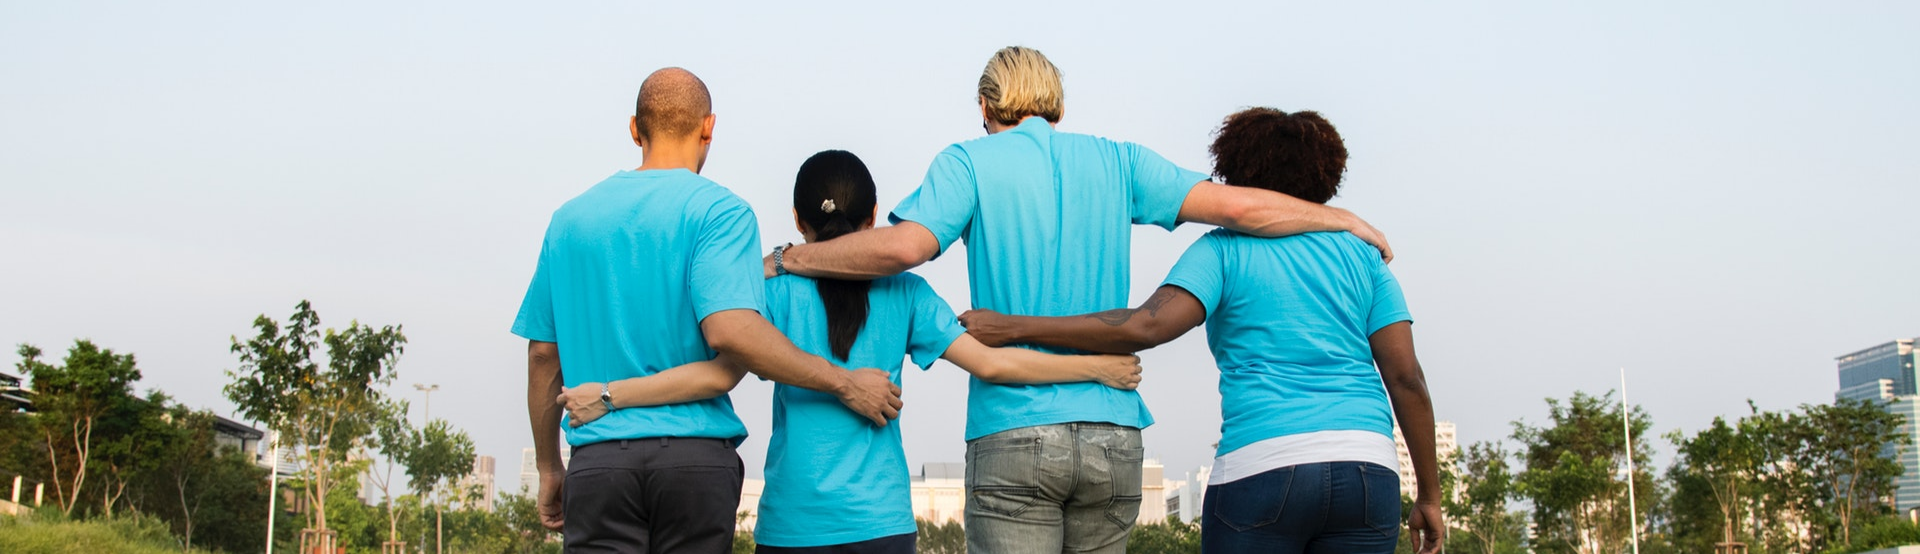 People in Blue T-Shirts